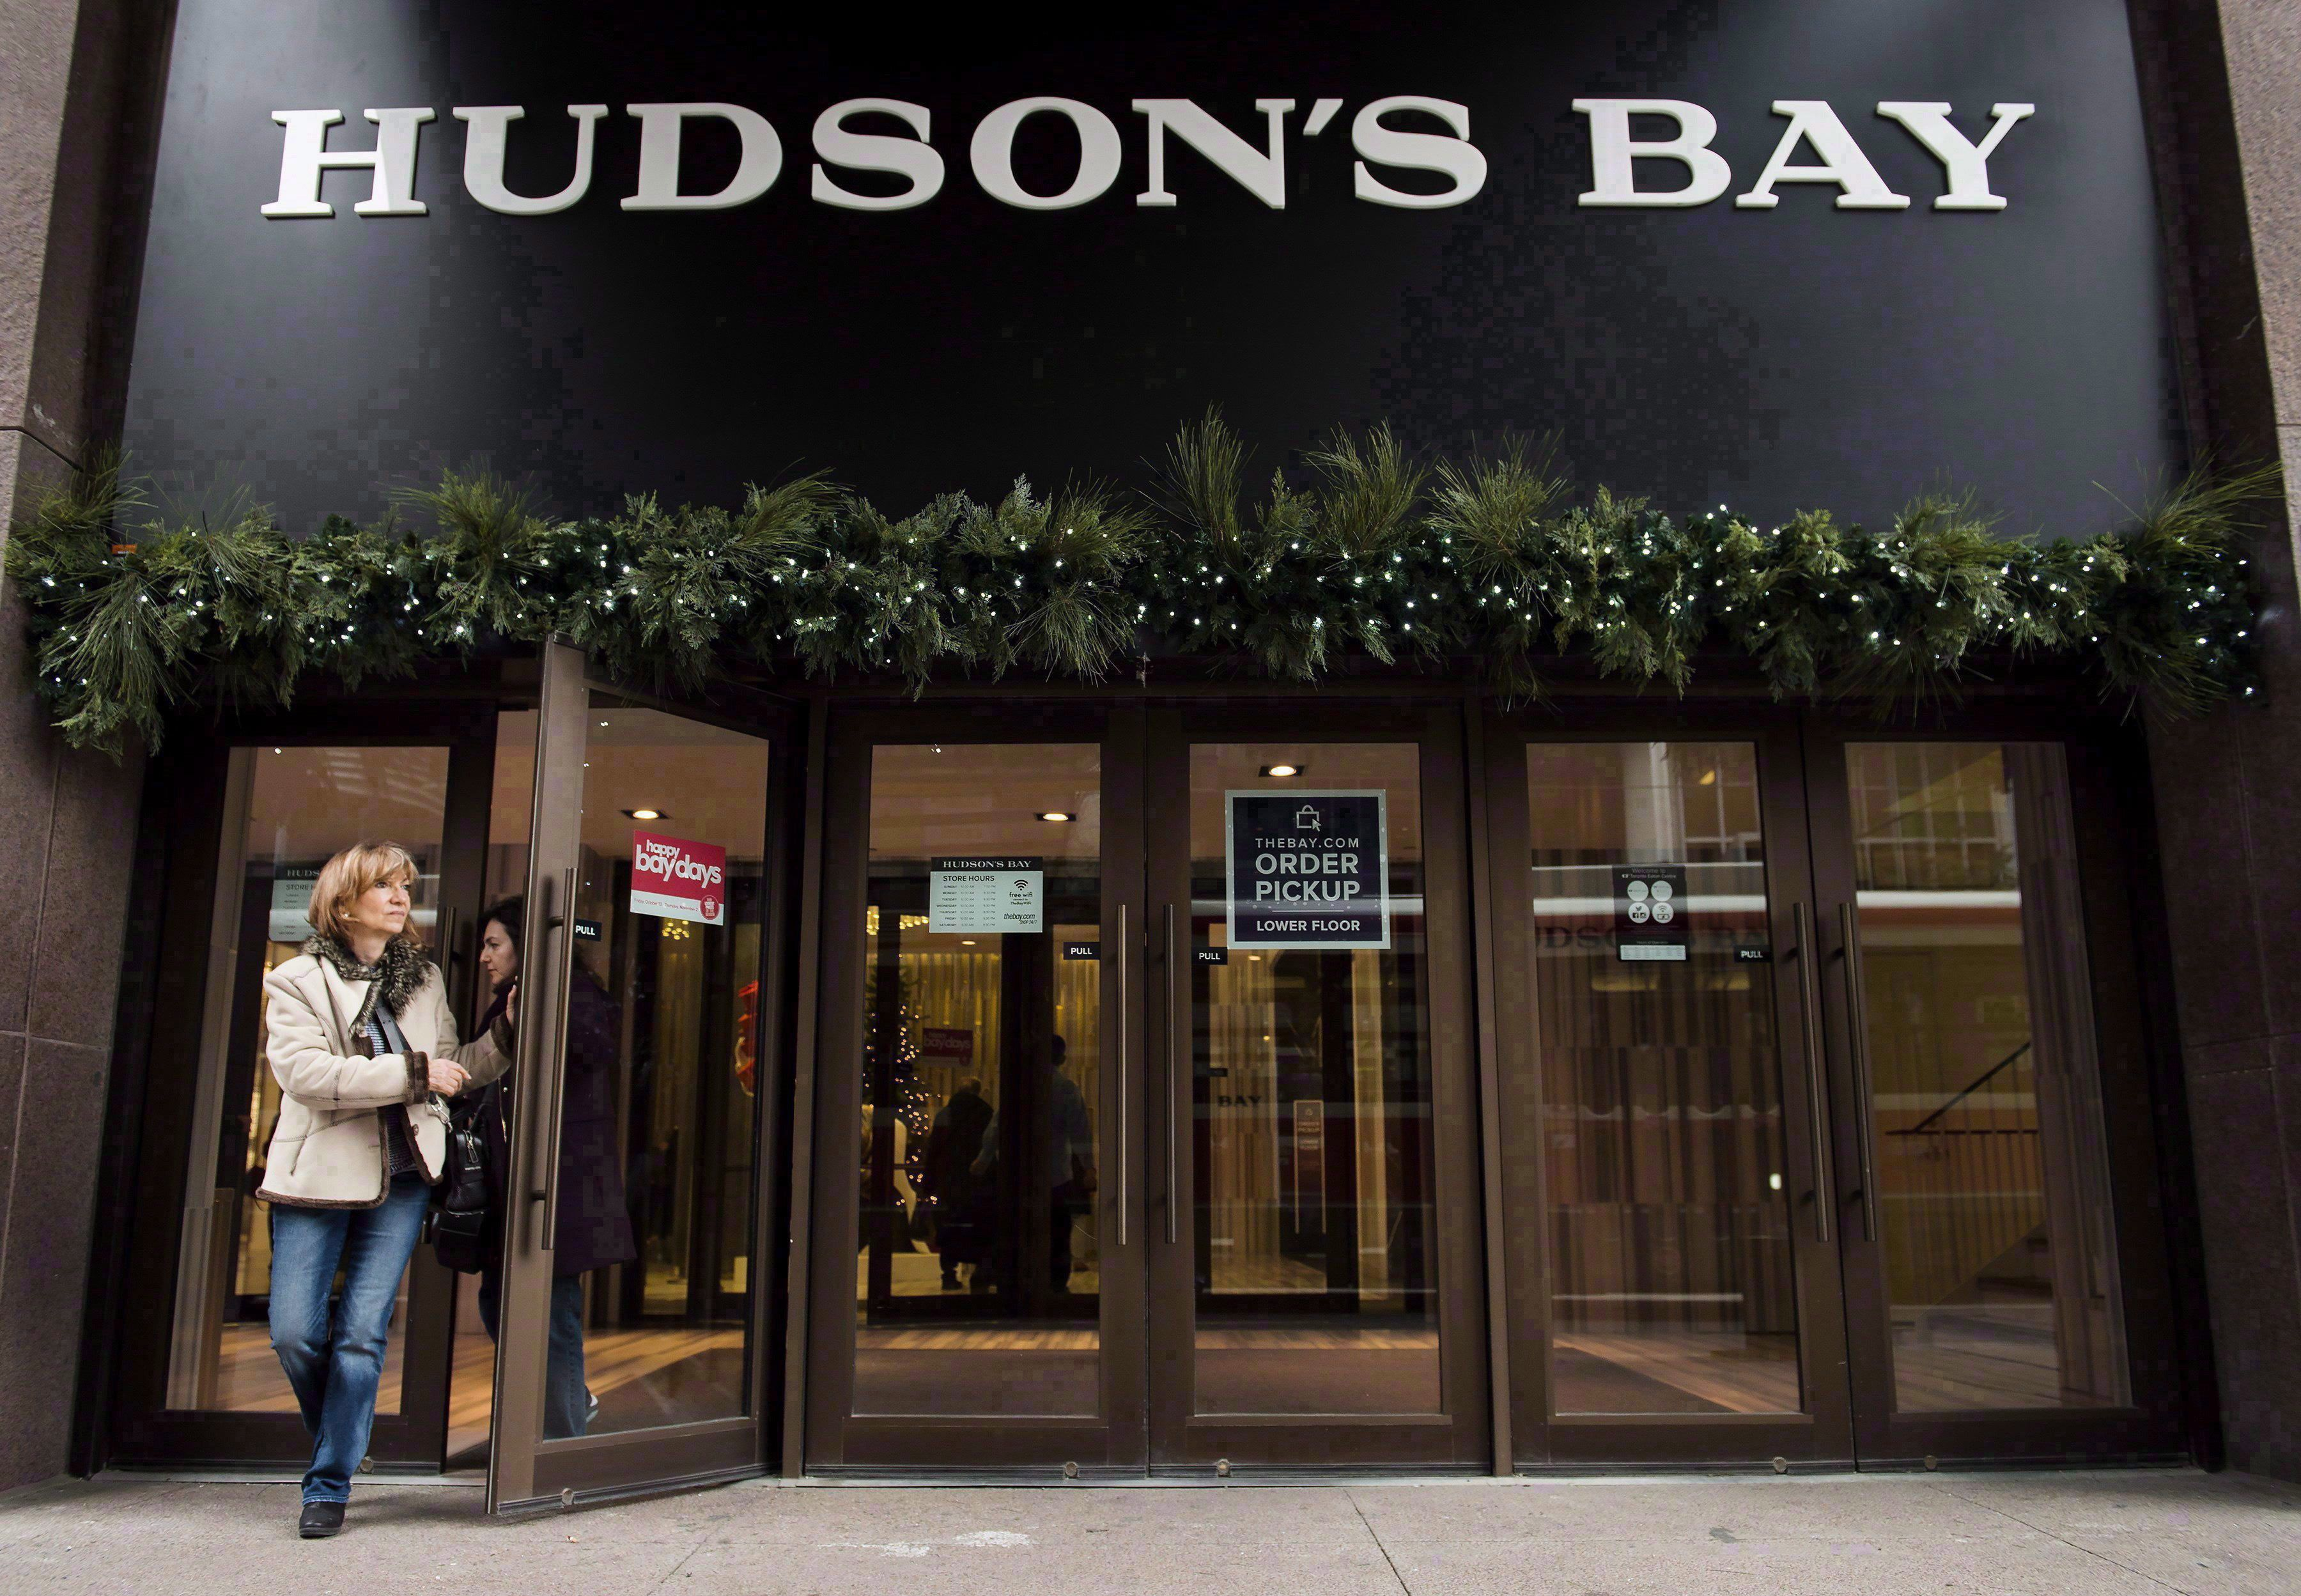 Hudson's Bay reports wider quarterly loss on lower sales, heavy discounts